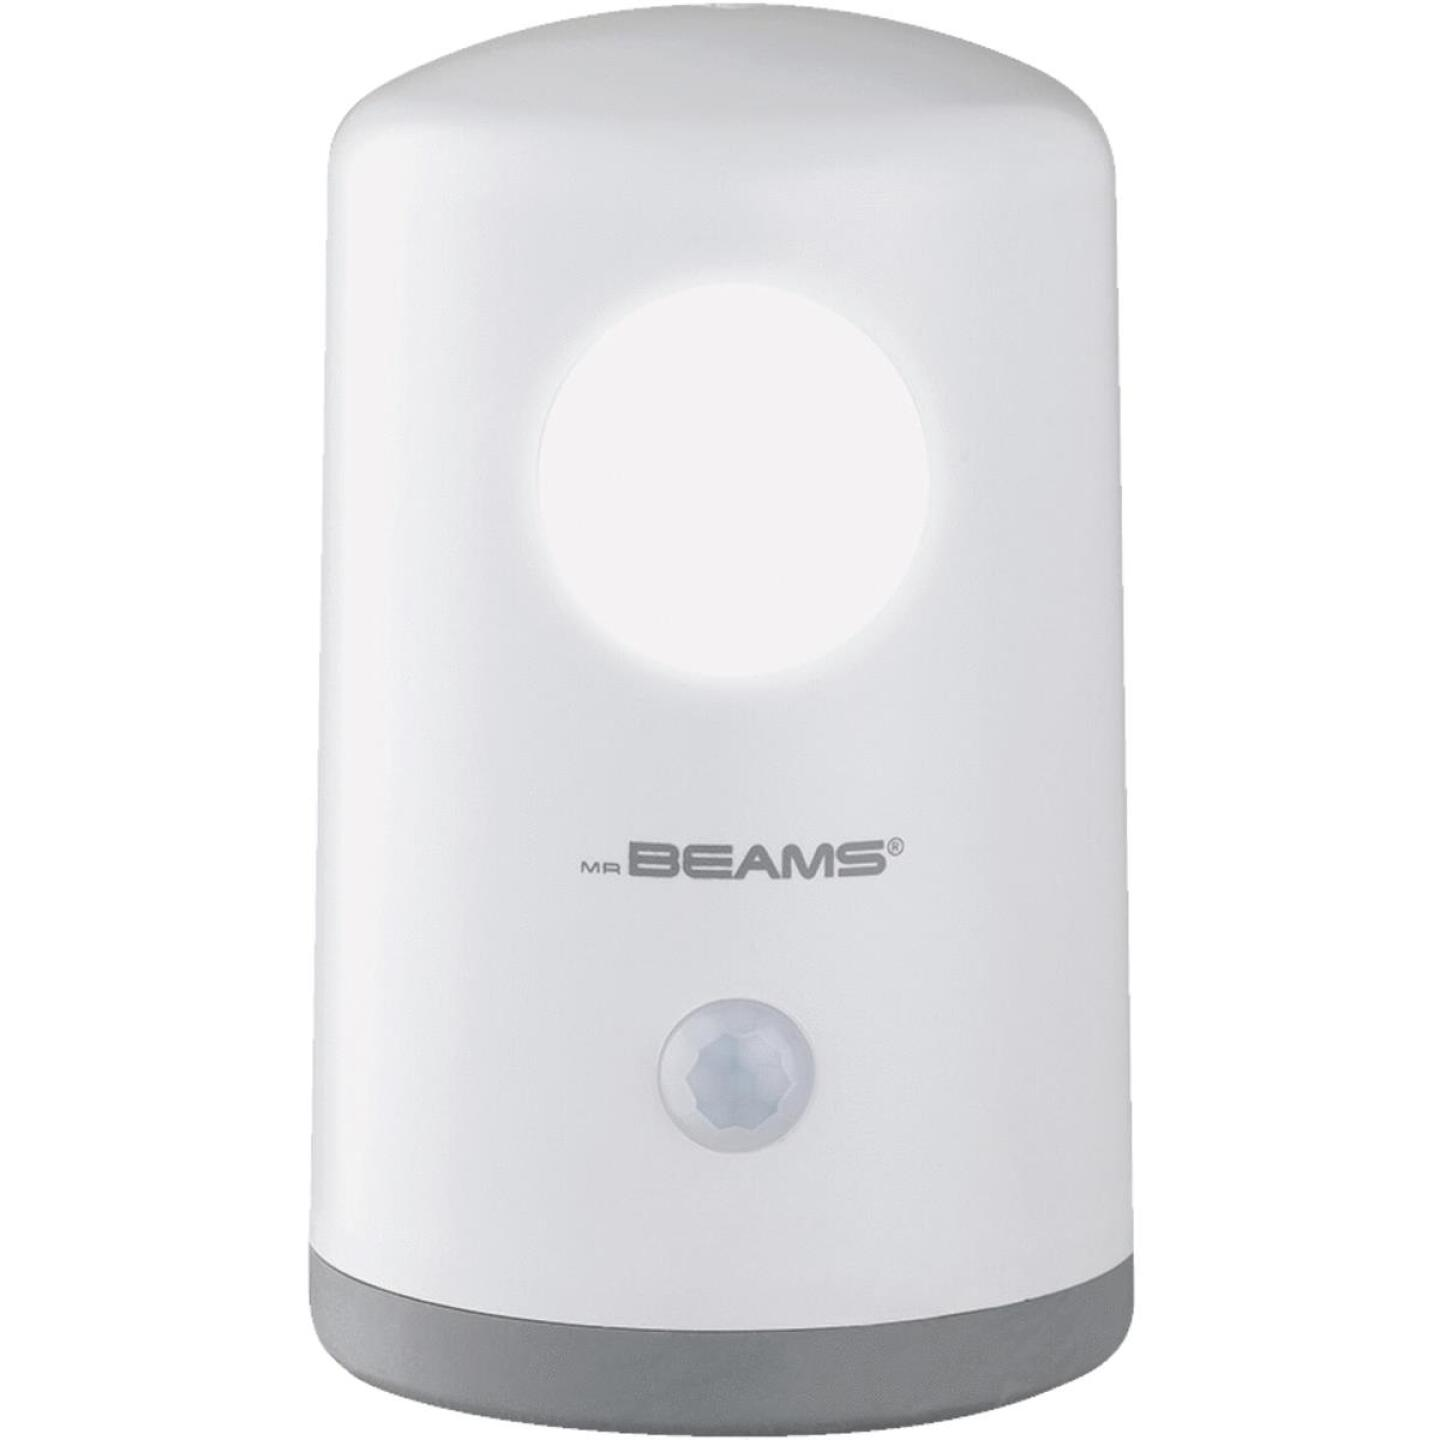 Mr. Beams White Hands Free Stand Anywhere Outdoor Battery Operated LED Light Image 3